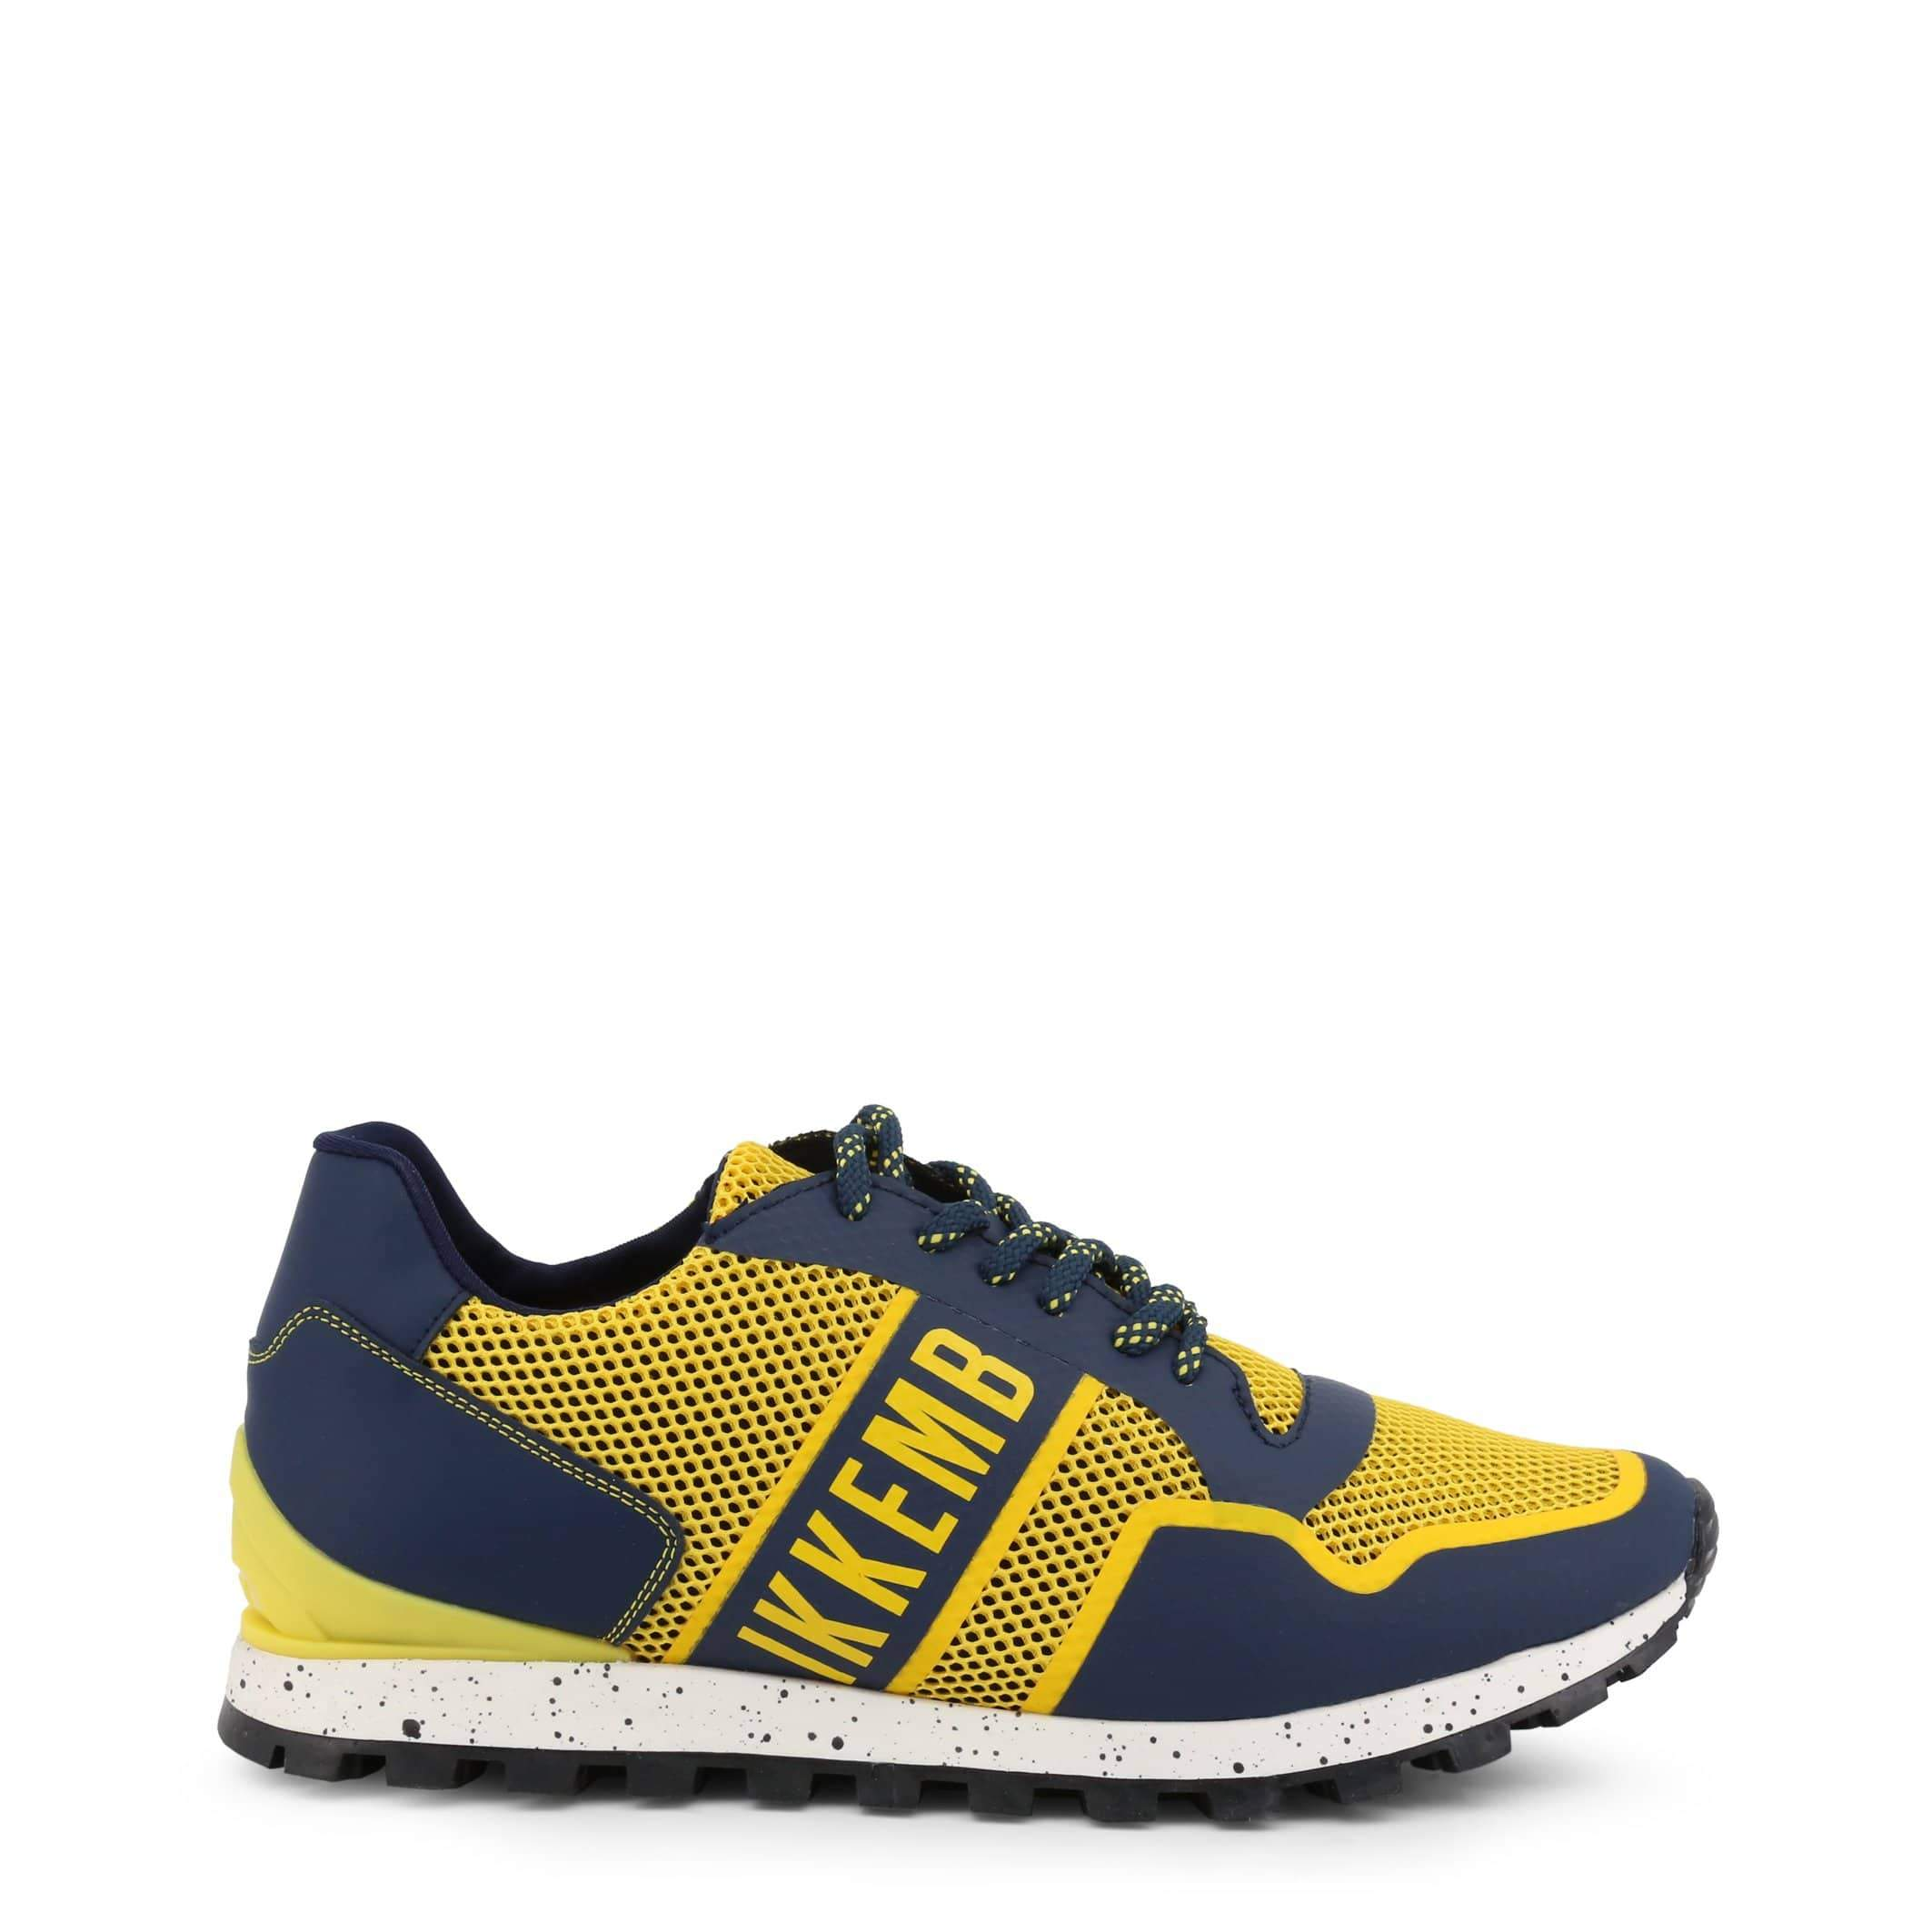 Bikkembergs Shoes Sneakers yellow / EU 39 Bikkembergs - FEND-ER_2084